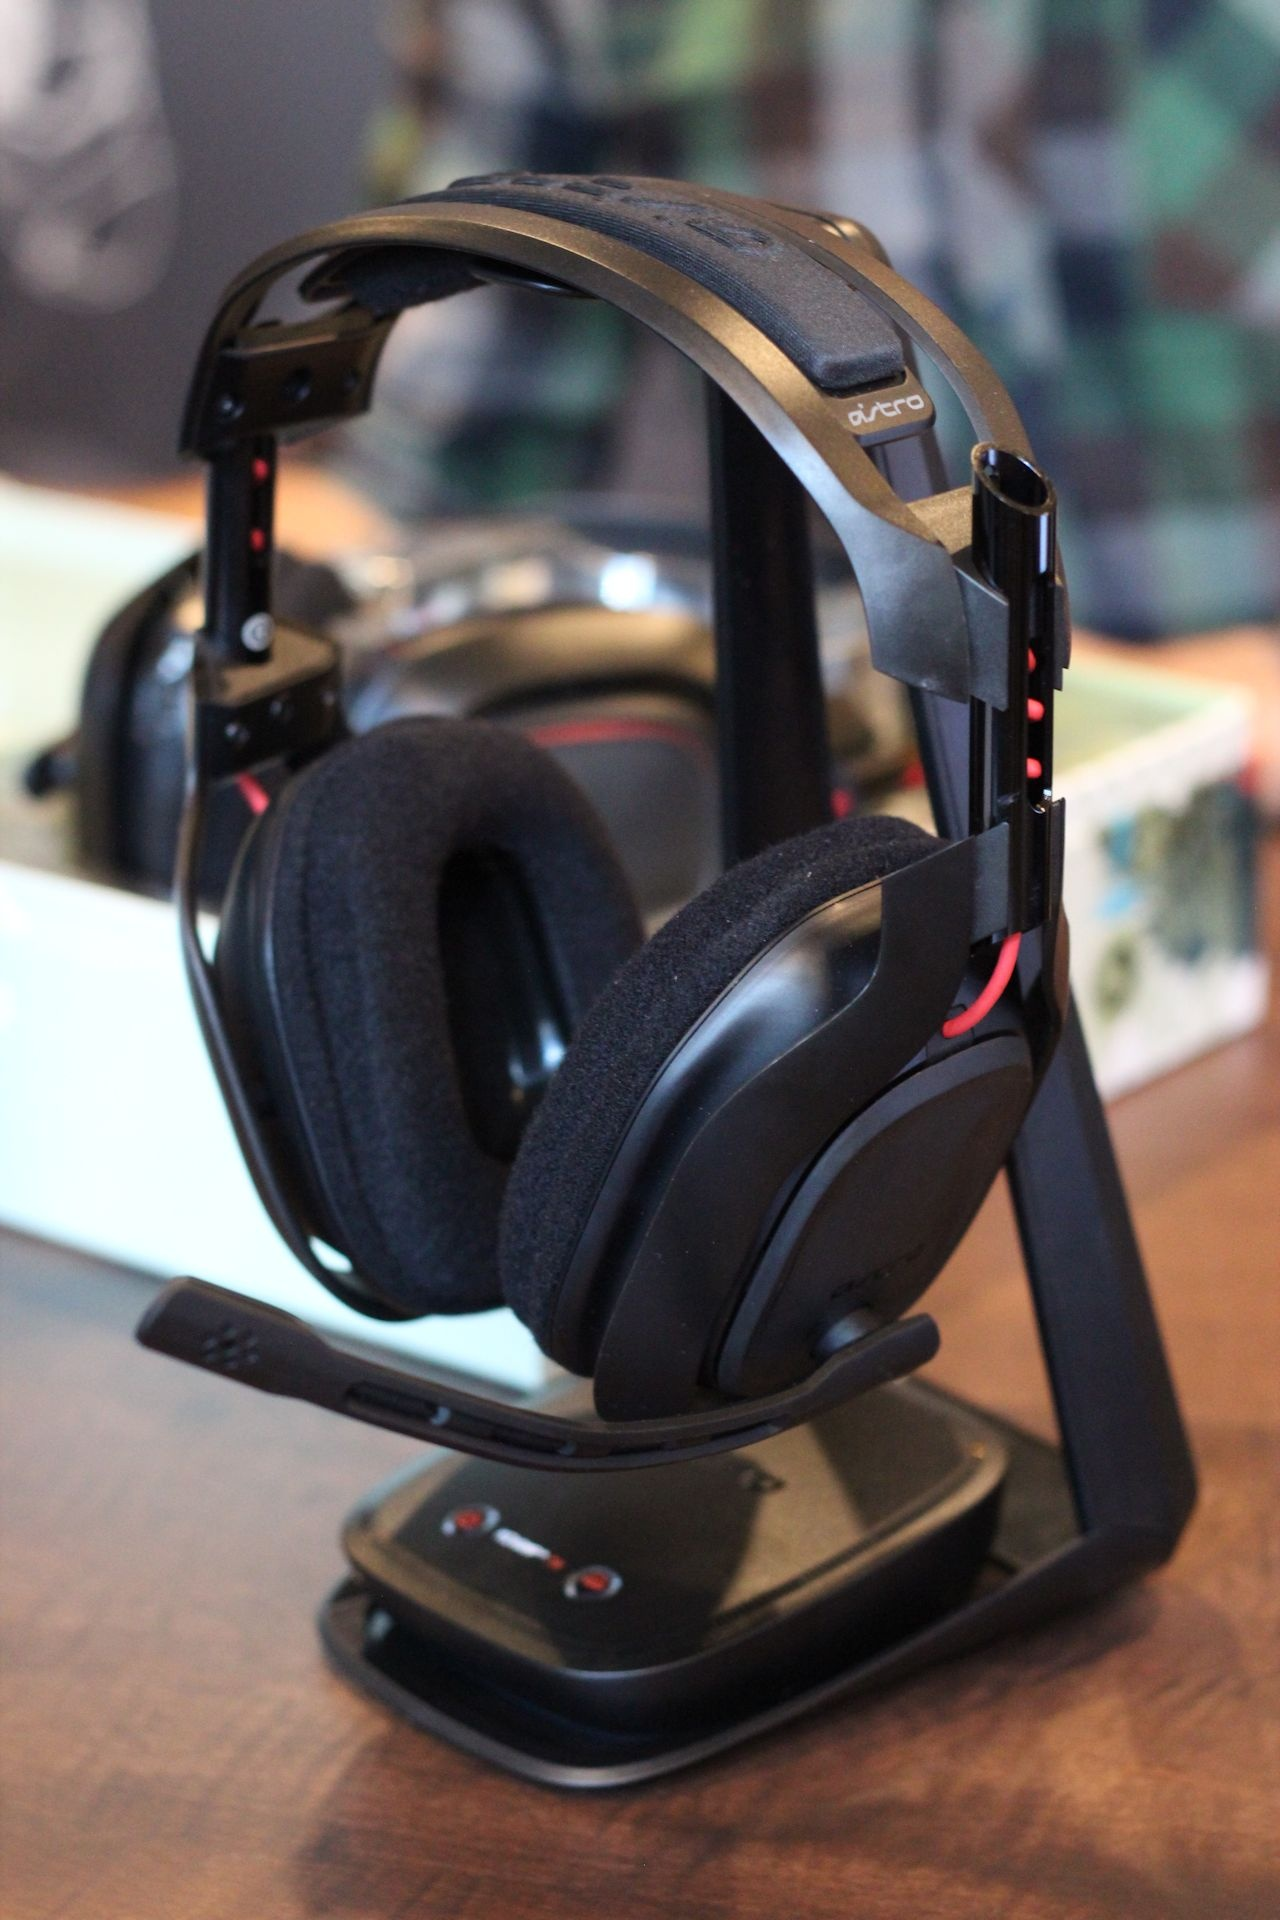 Co-Optimus - News - E3 2012: Astro A50 Ears on Impressions